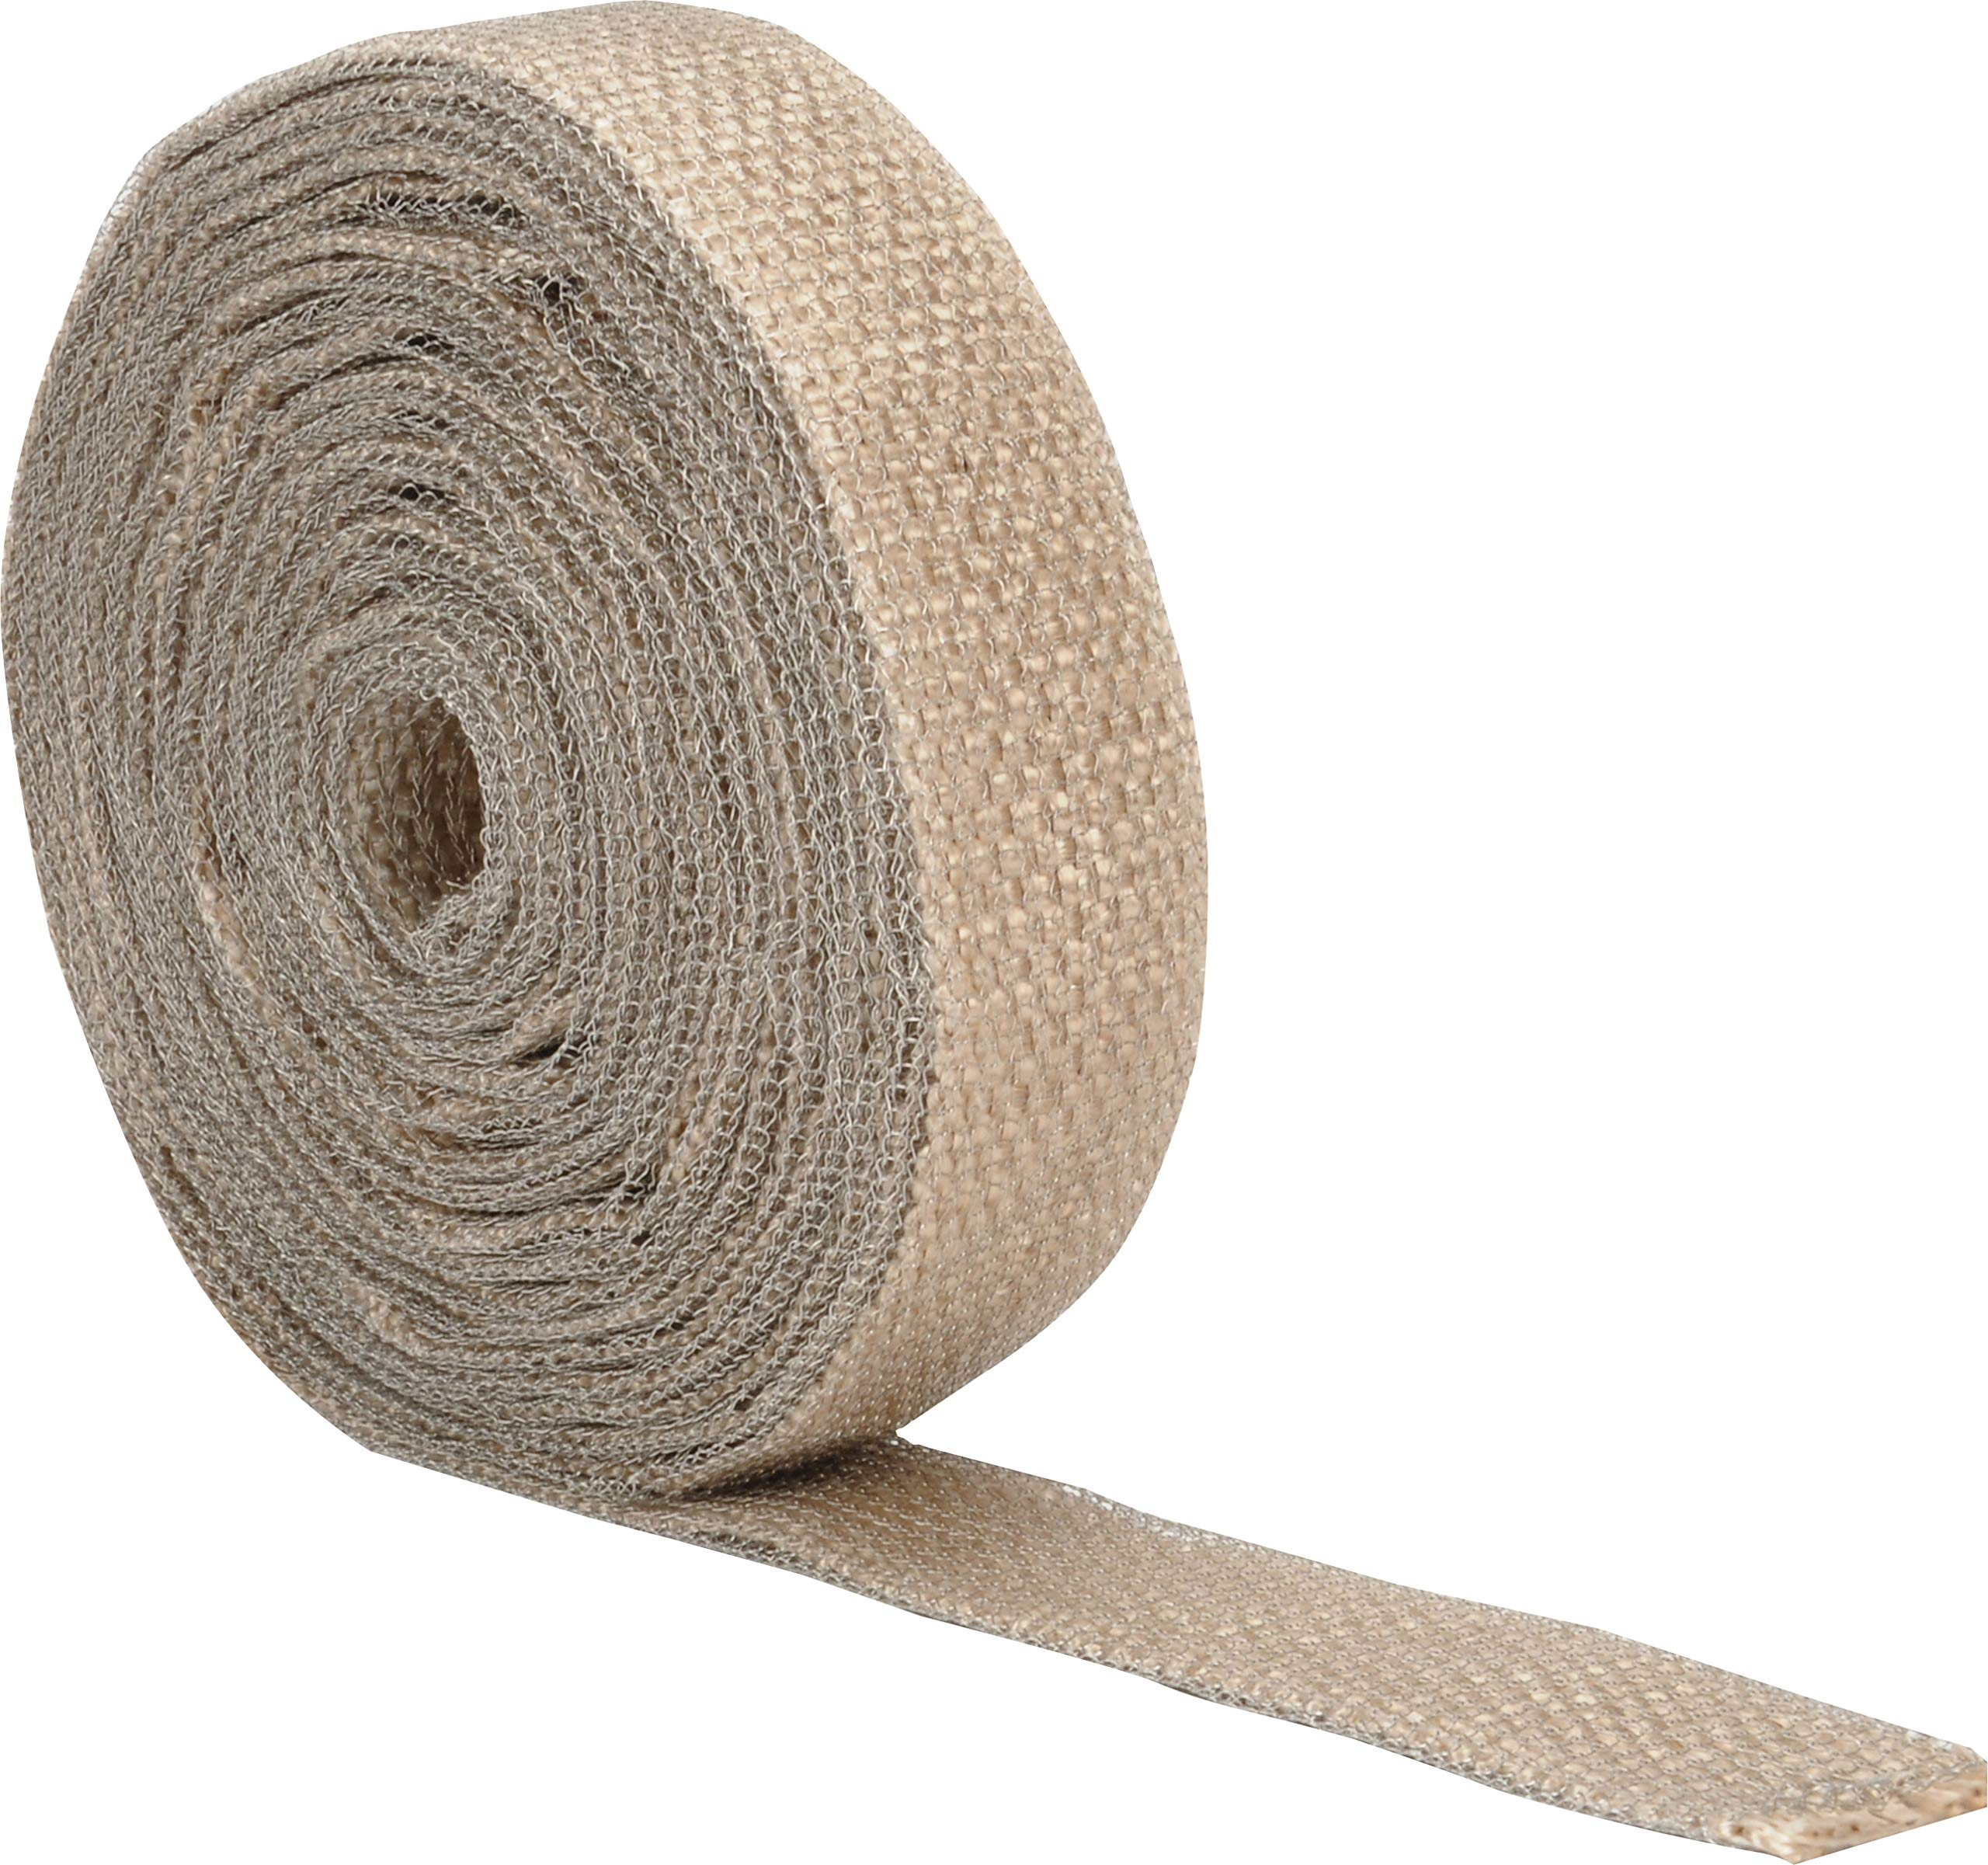 """Design Engineering 010076 EXO Series Exhaust and Pipe Wrap, 1.5"""" x 20' - Tan"""